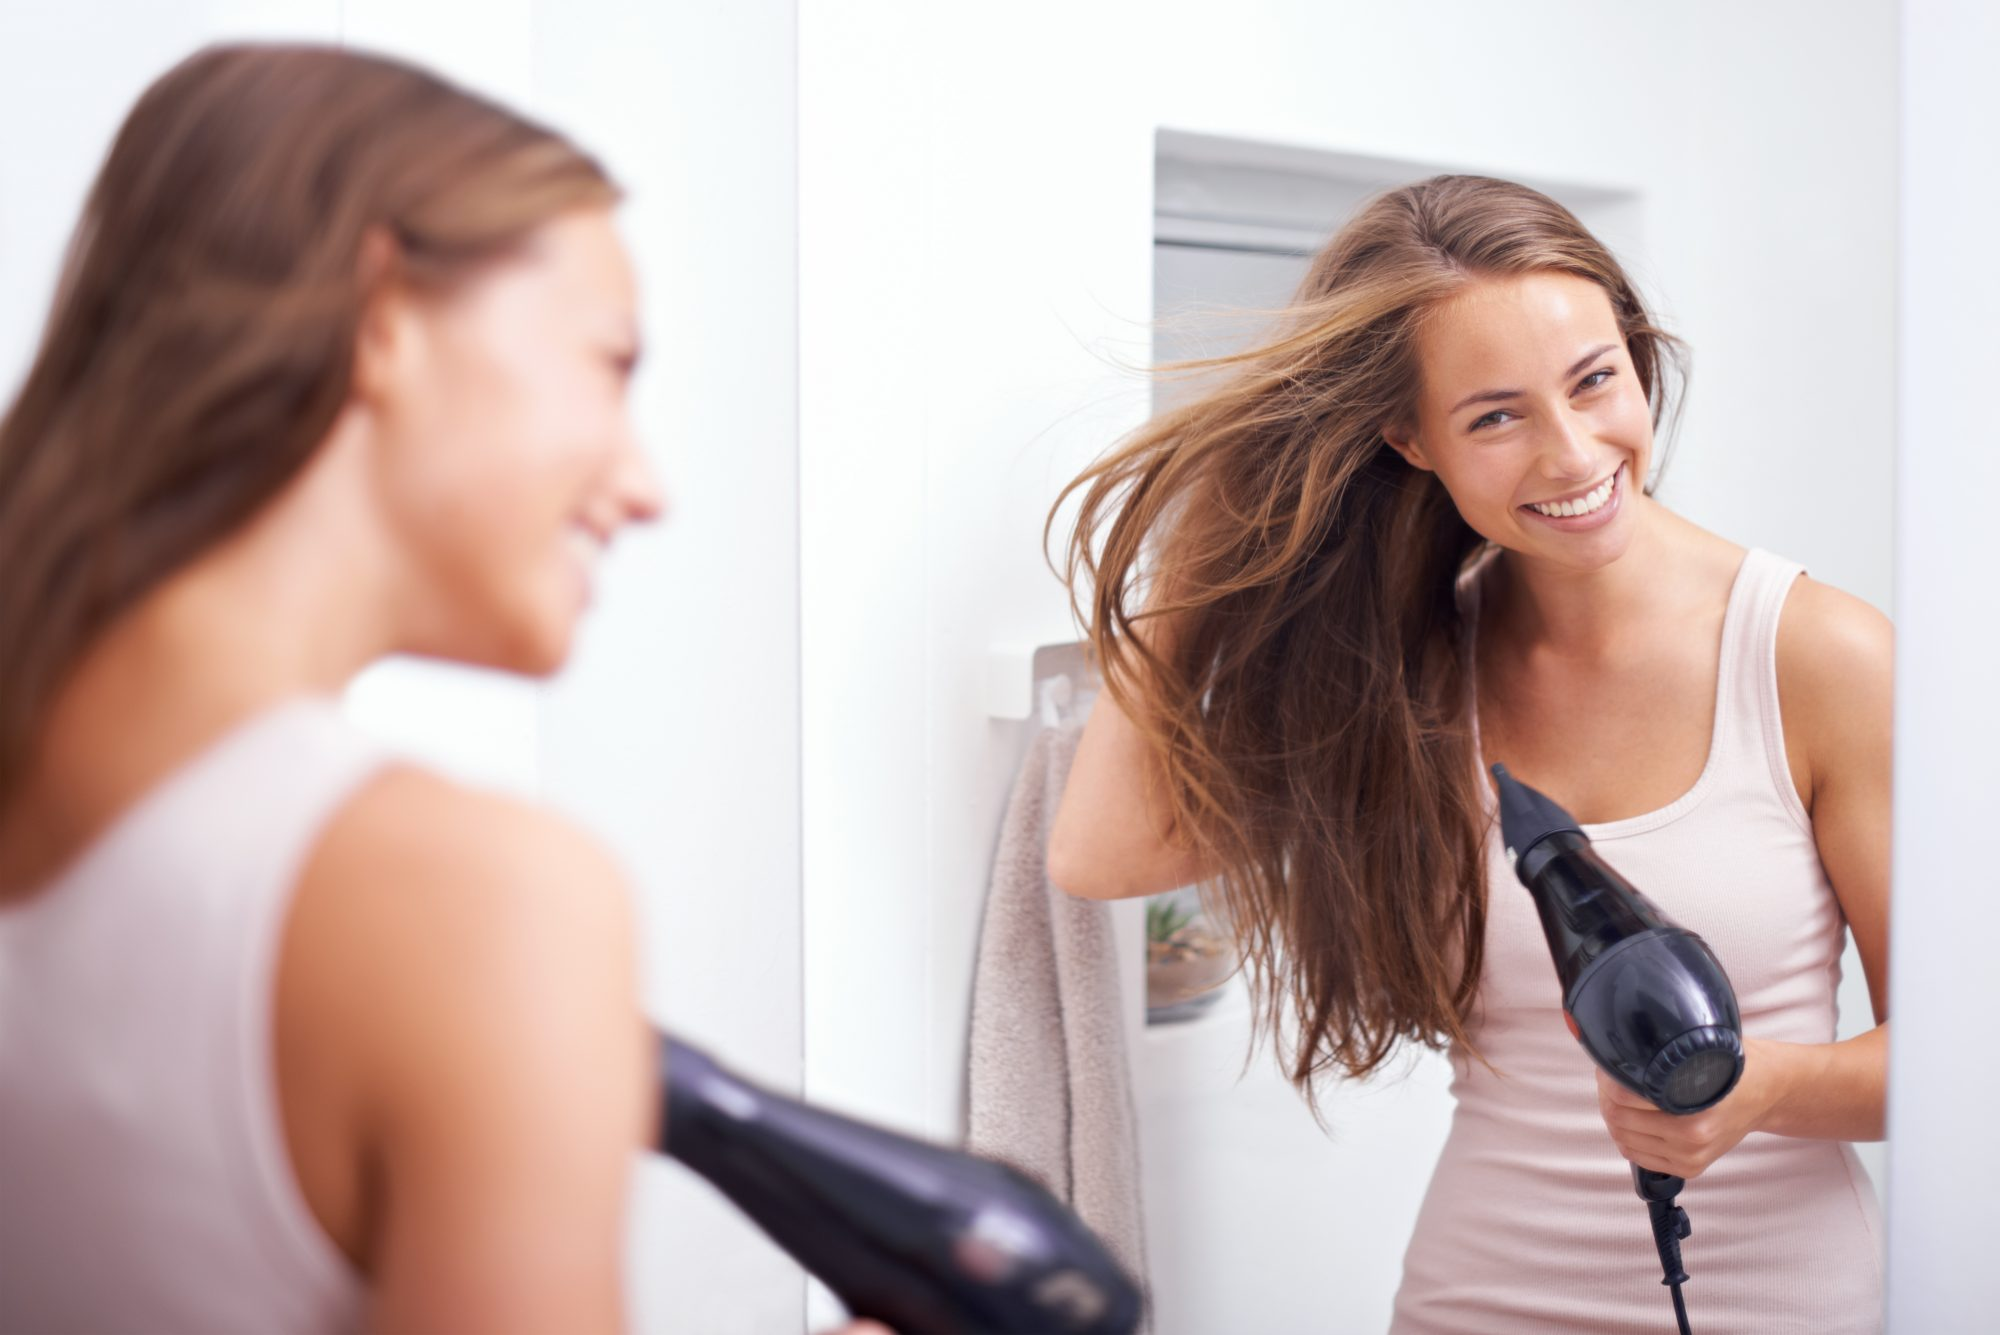 Woman blowdrying her hair